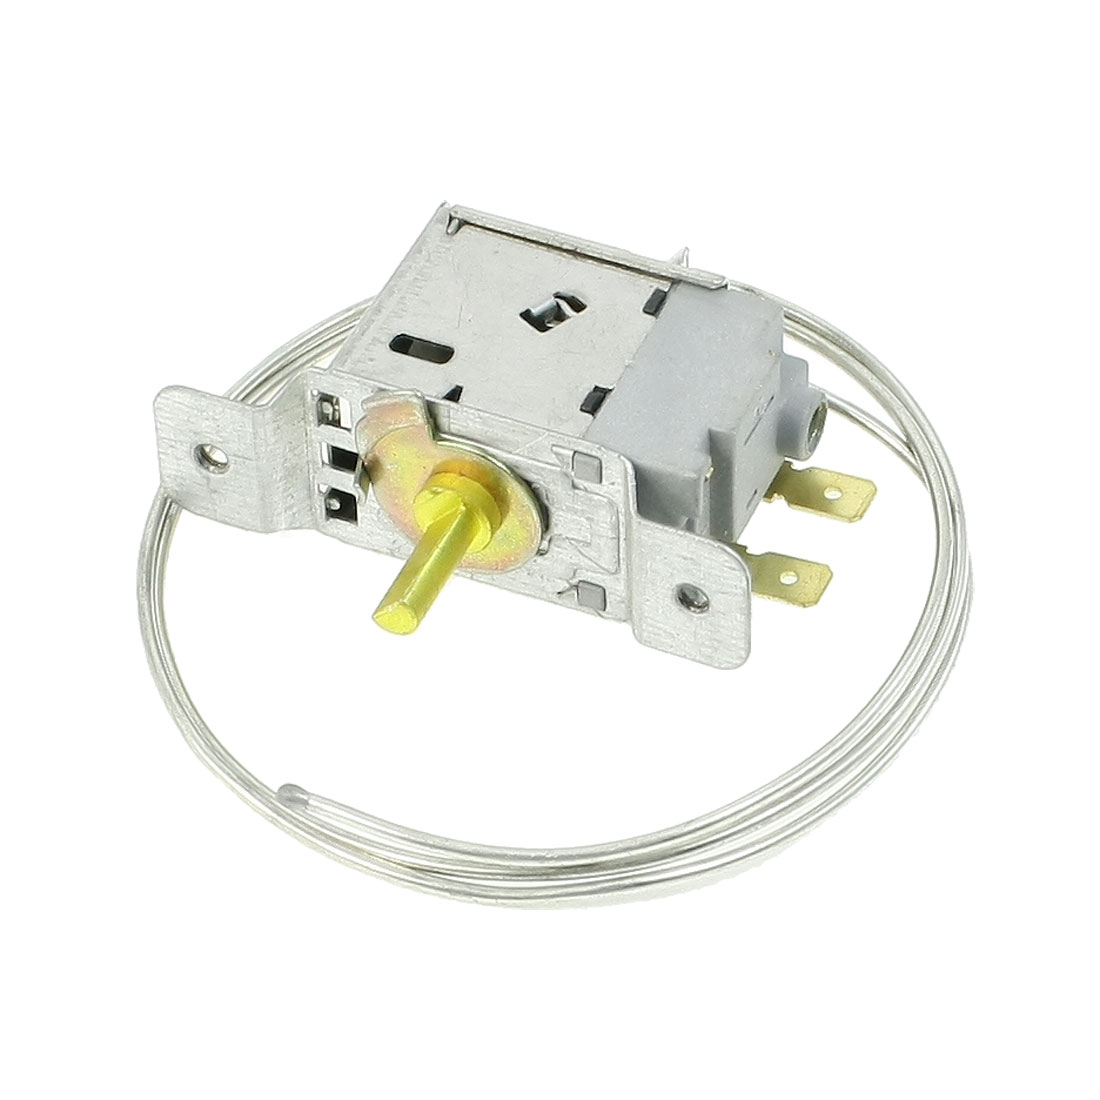 AC 250V 3A 2 Pin Refrigeration Thermostat for Refrigerators WPF-22